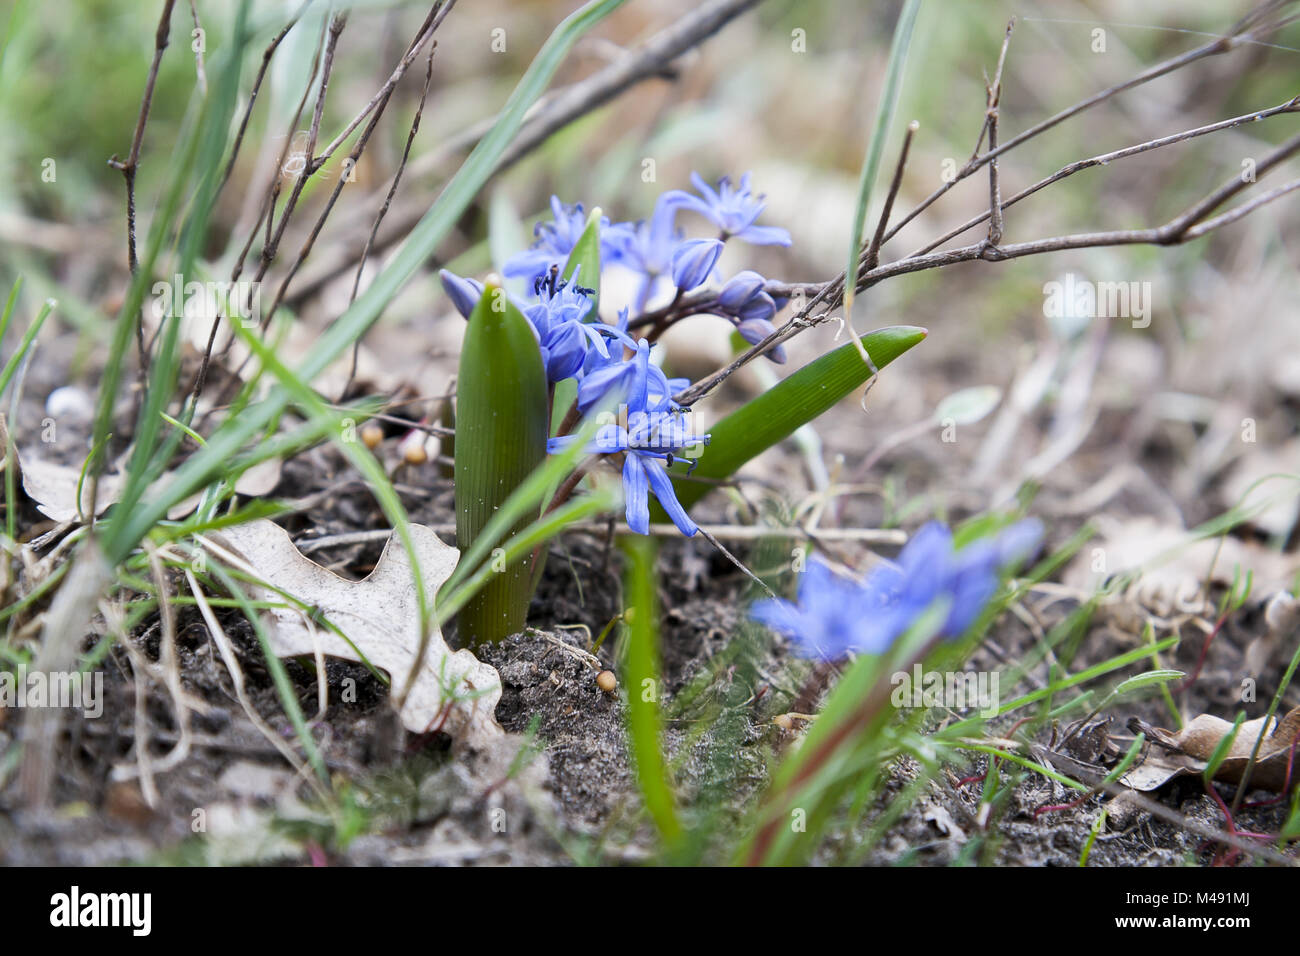 Wild Growing Blue Snowdrop Blue Early Spring Flower Stock Photo